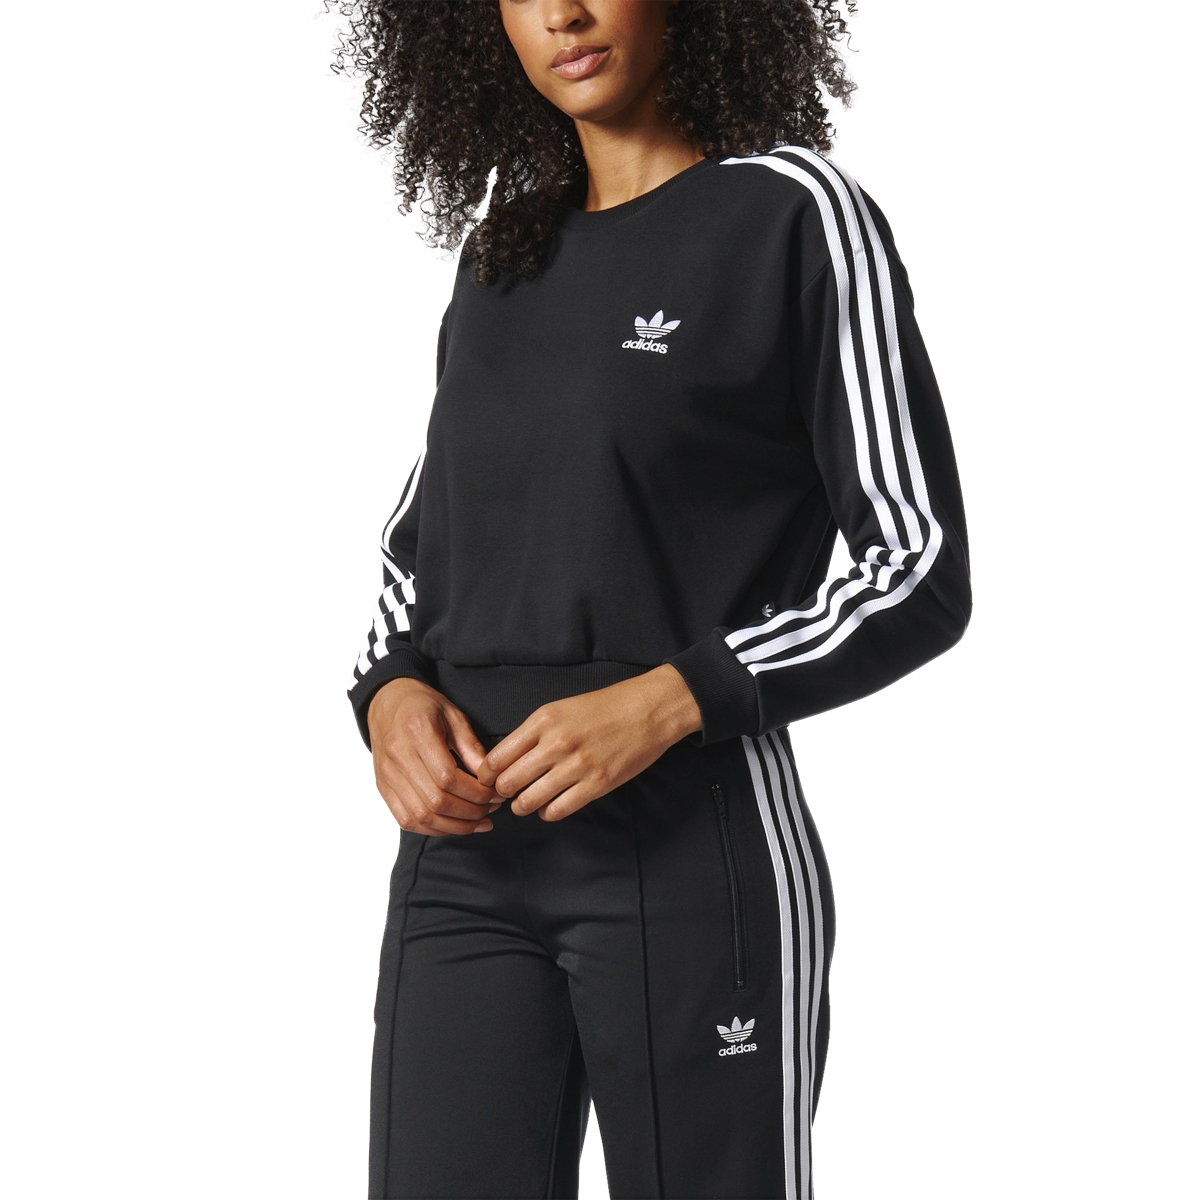 sold adidas black and white sweater adidas soccer ball. Black Bedroom Furniture Sets. Home Design Ideas